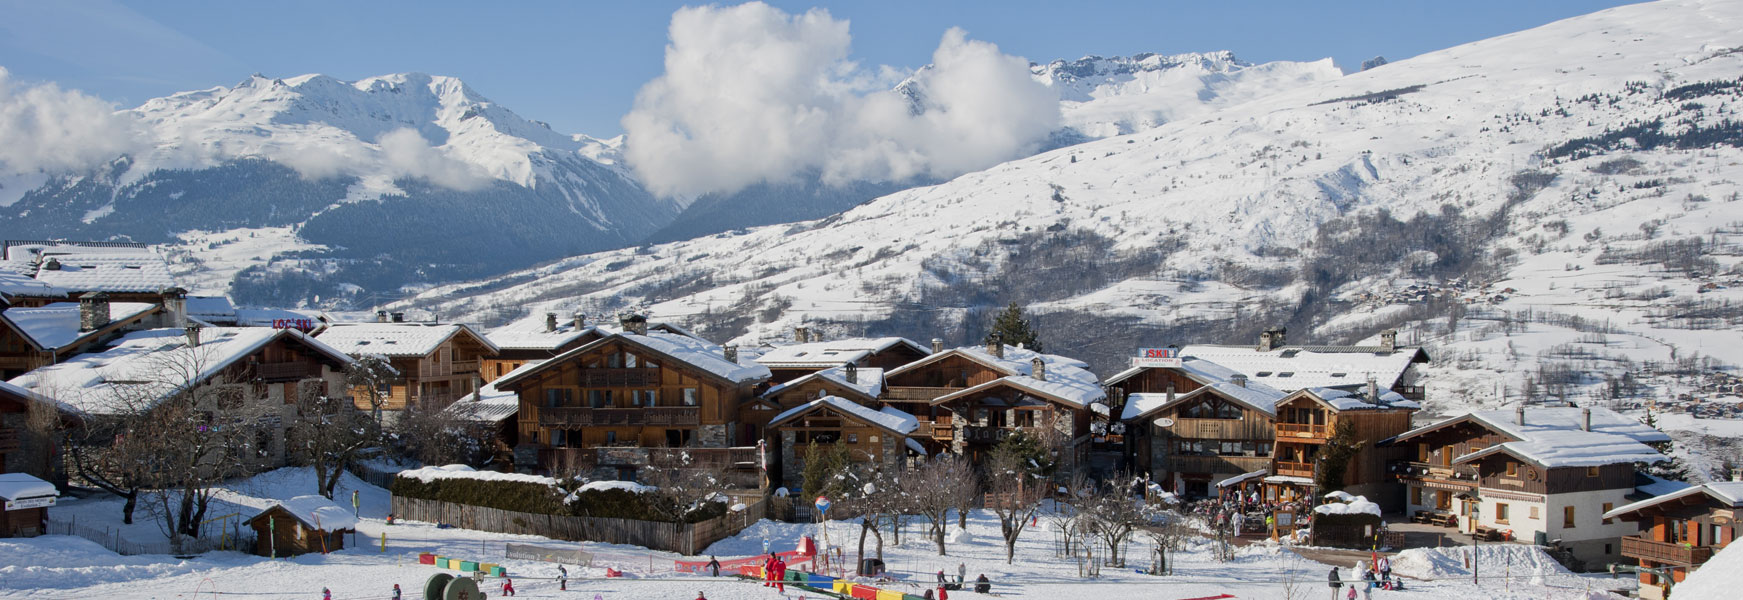 Location Ski Intersport La Plagne Montchavin